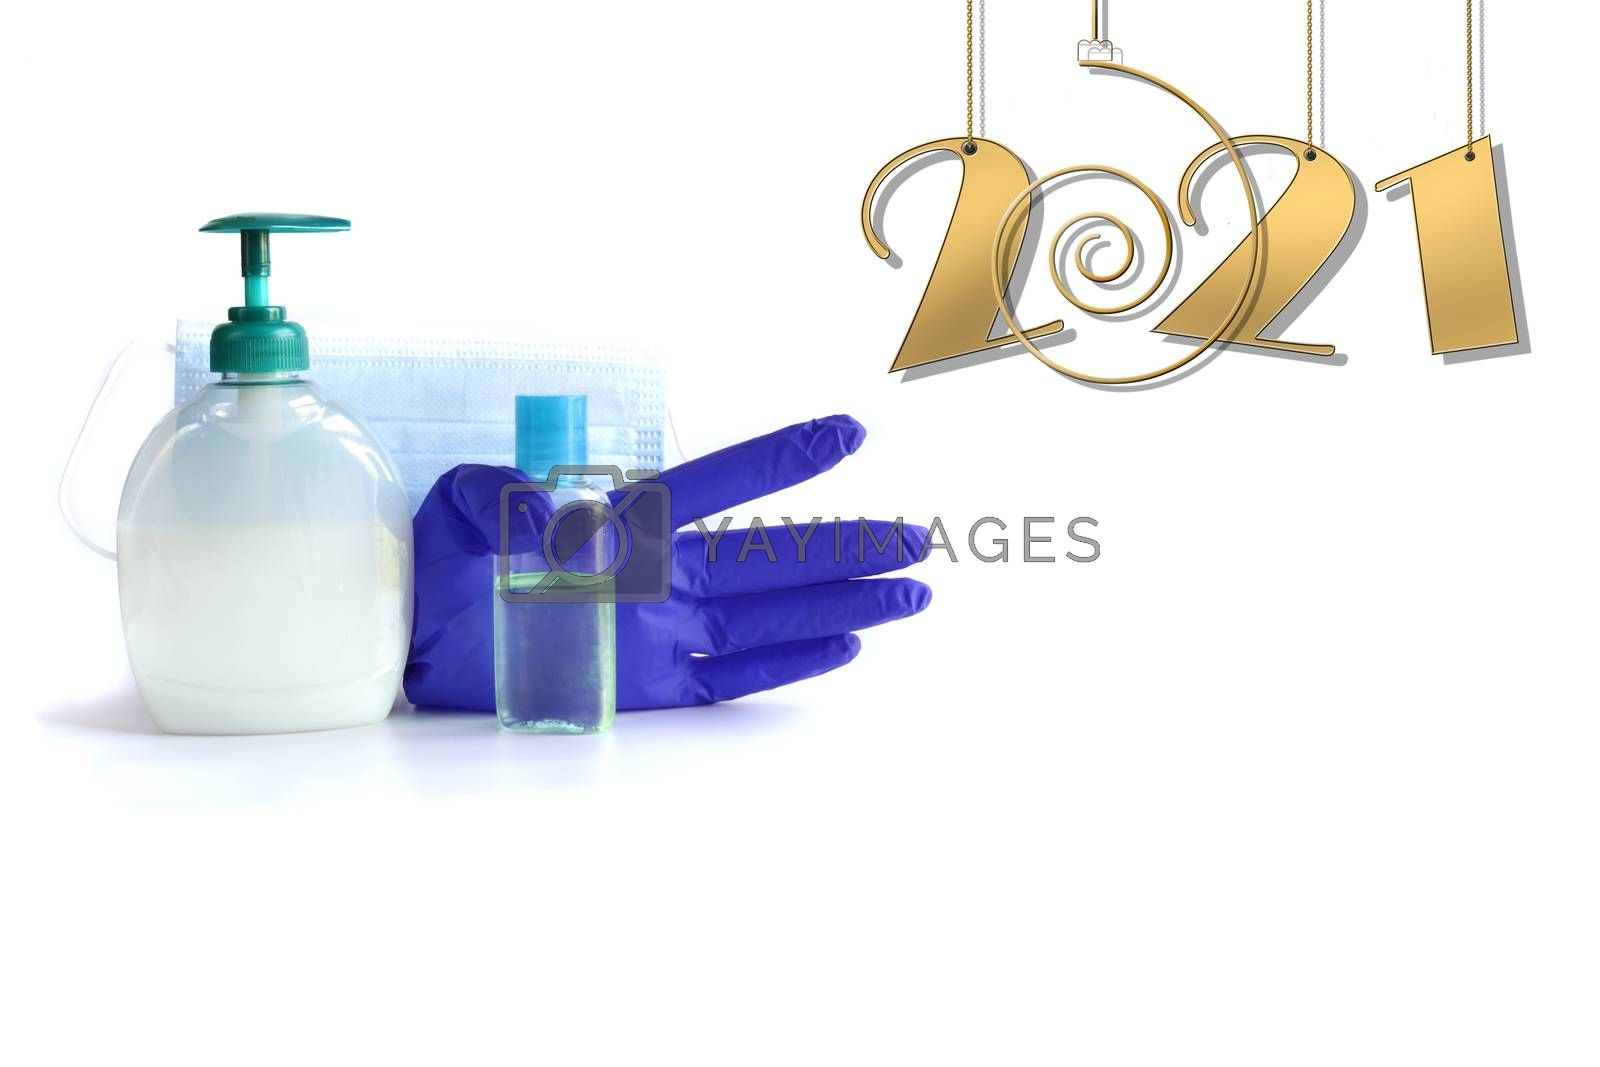 New year gold number 2021, protective face mask, antiseptic, gloves against virus on white background. New year 2021 awareness